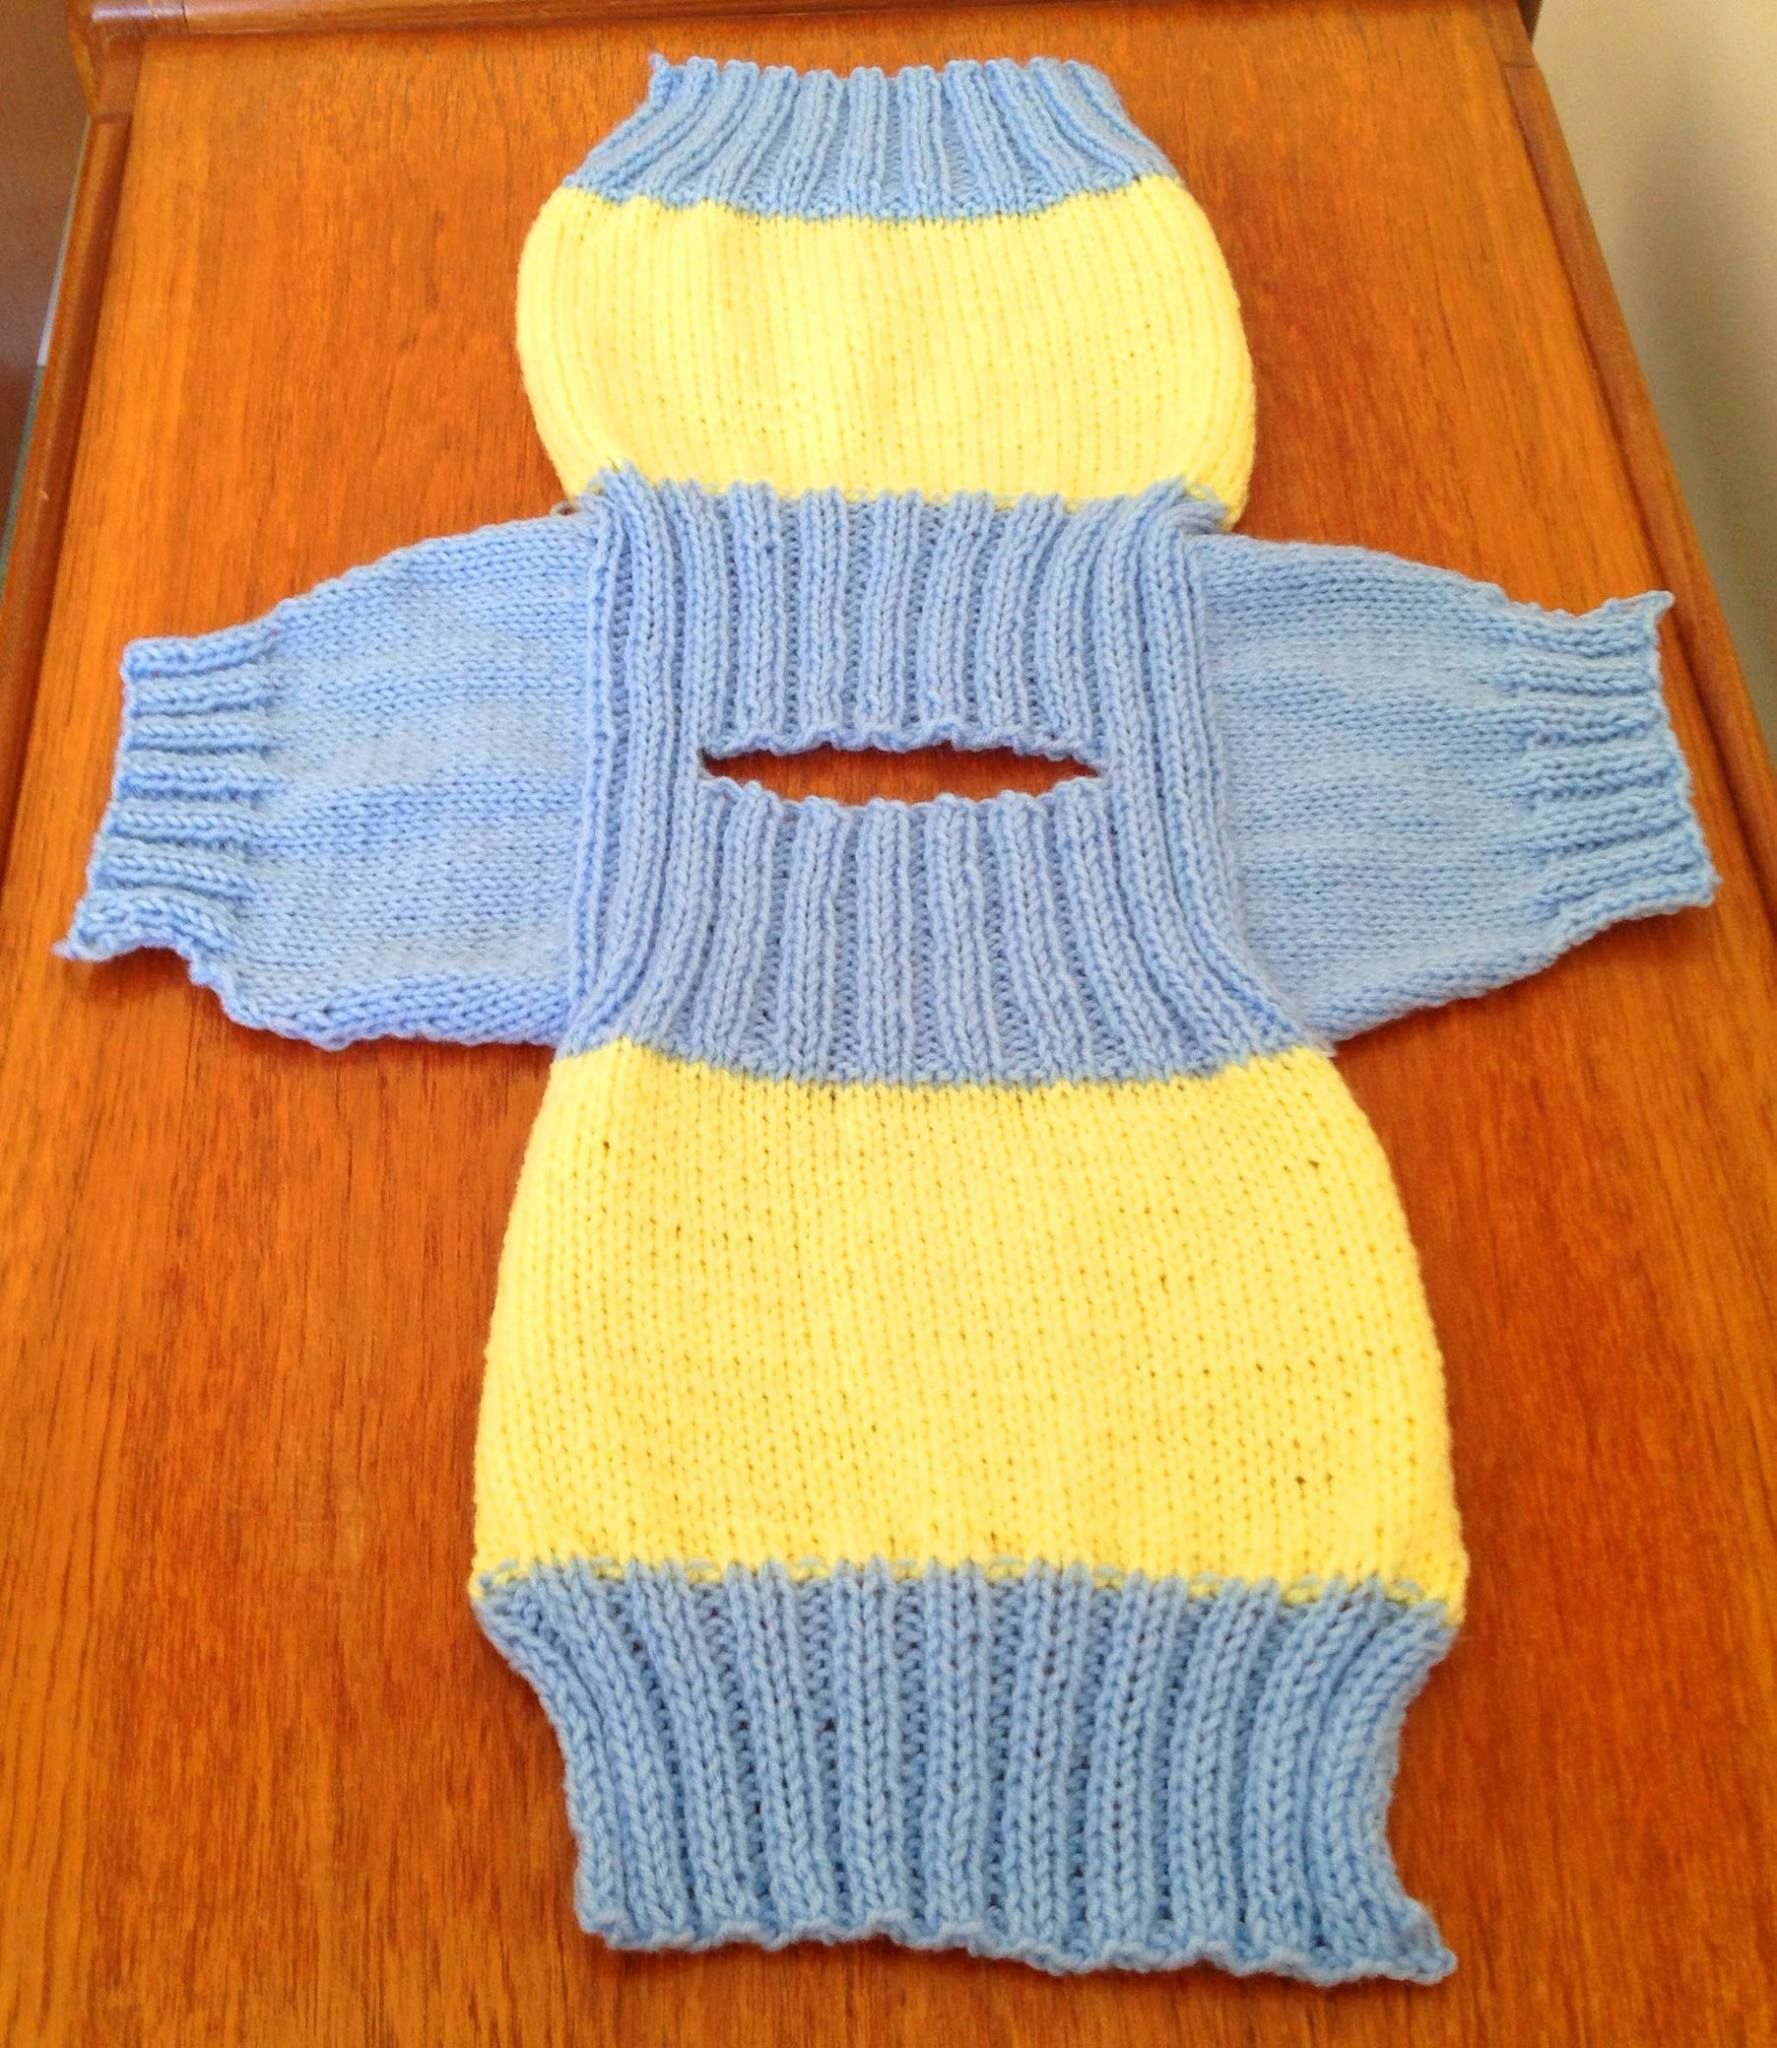 Fish and Chip Babies Knitting Pattern | Knitting patterns, Fish and ...